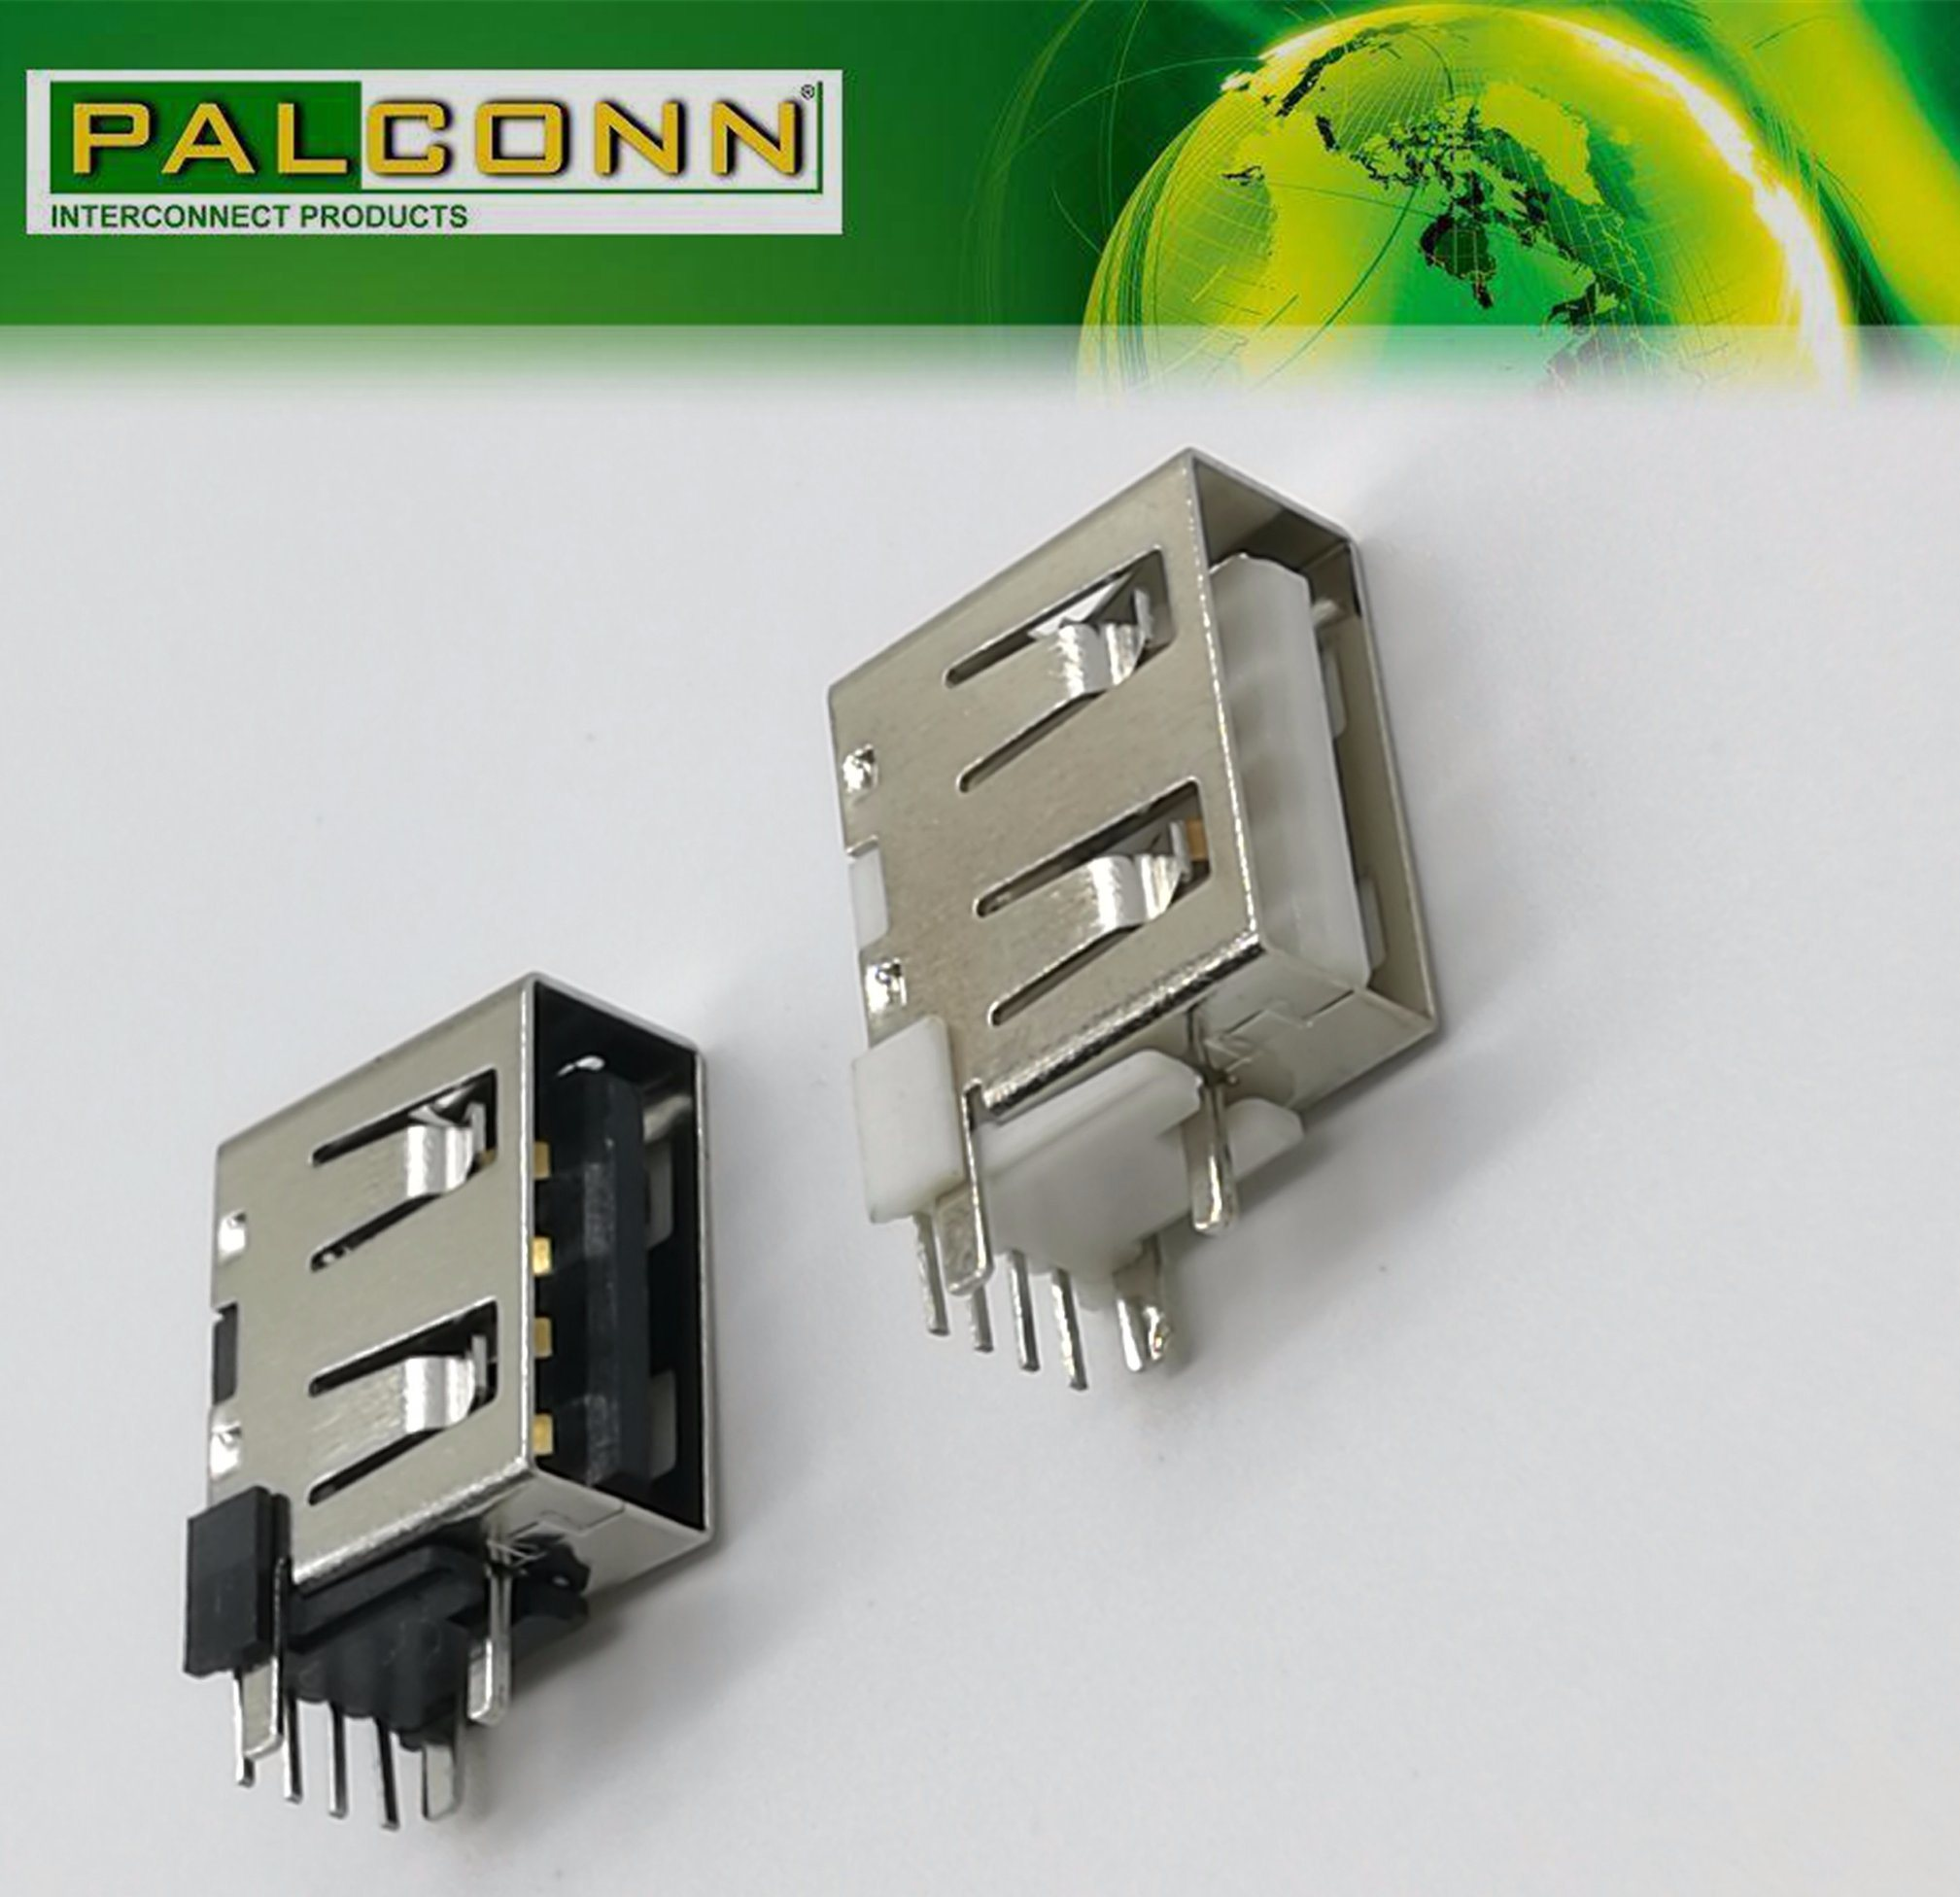 Rated Current~4A! USB2.0 Type a Female Connector for Power Adaptor, Power Bank